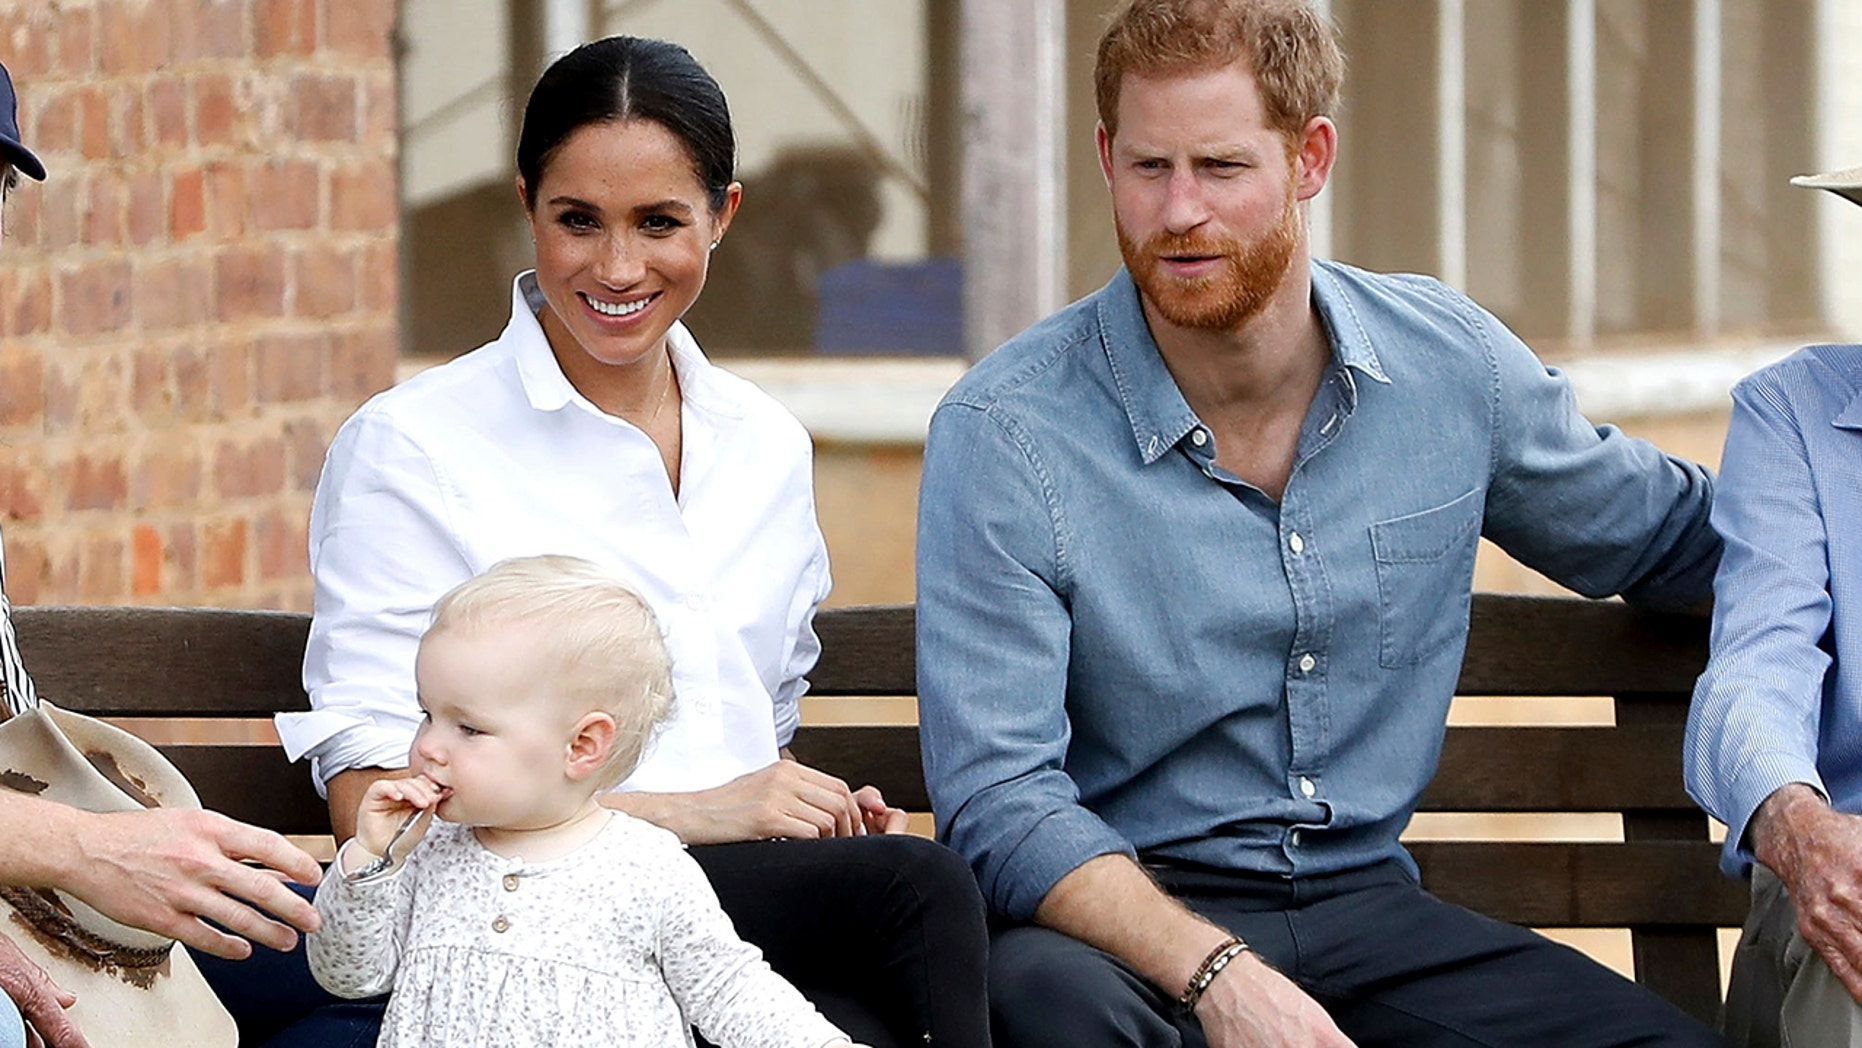 Britain's Prince Harry and Meghan, Duchess of Sussex sit down with the Woodleys family during a farm visit in Dubbo, Australia, Wednesday, Oct. 17, 2018. Prince Harry and his wife Meghan are on day two of their 16-day tour of Australia and the South Pacific. (Chris Jackson/Pool via AP)